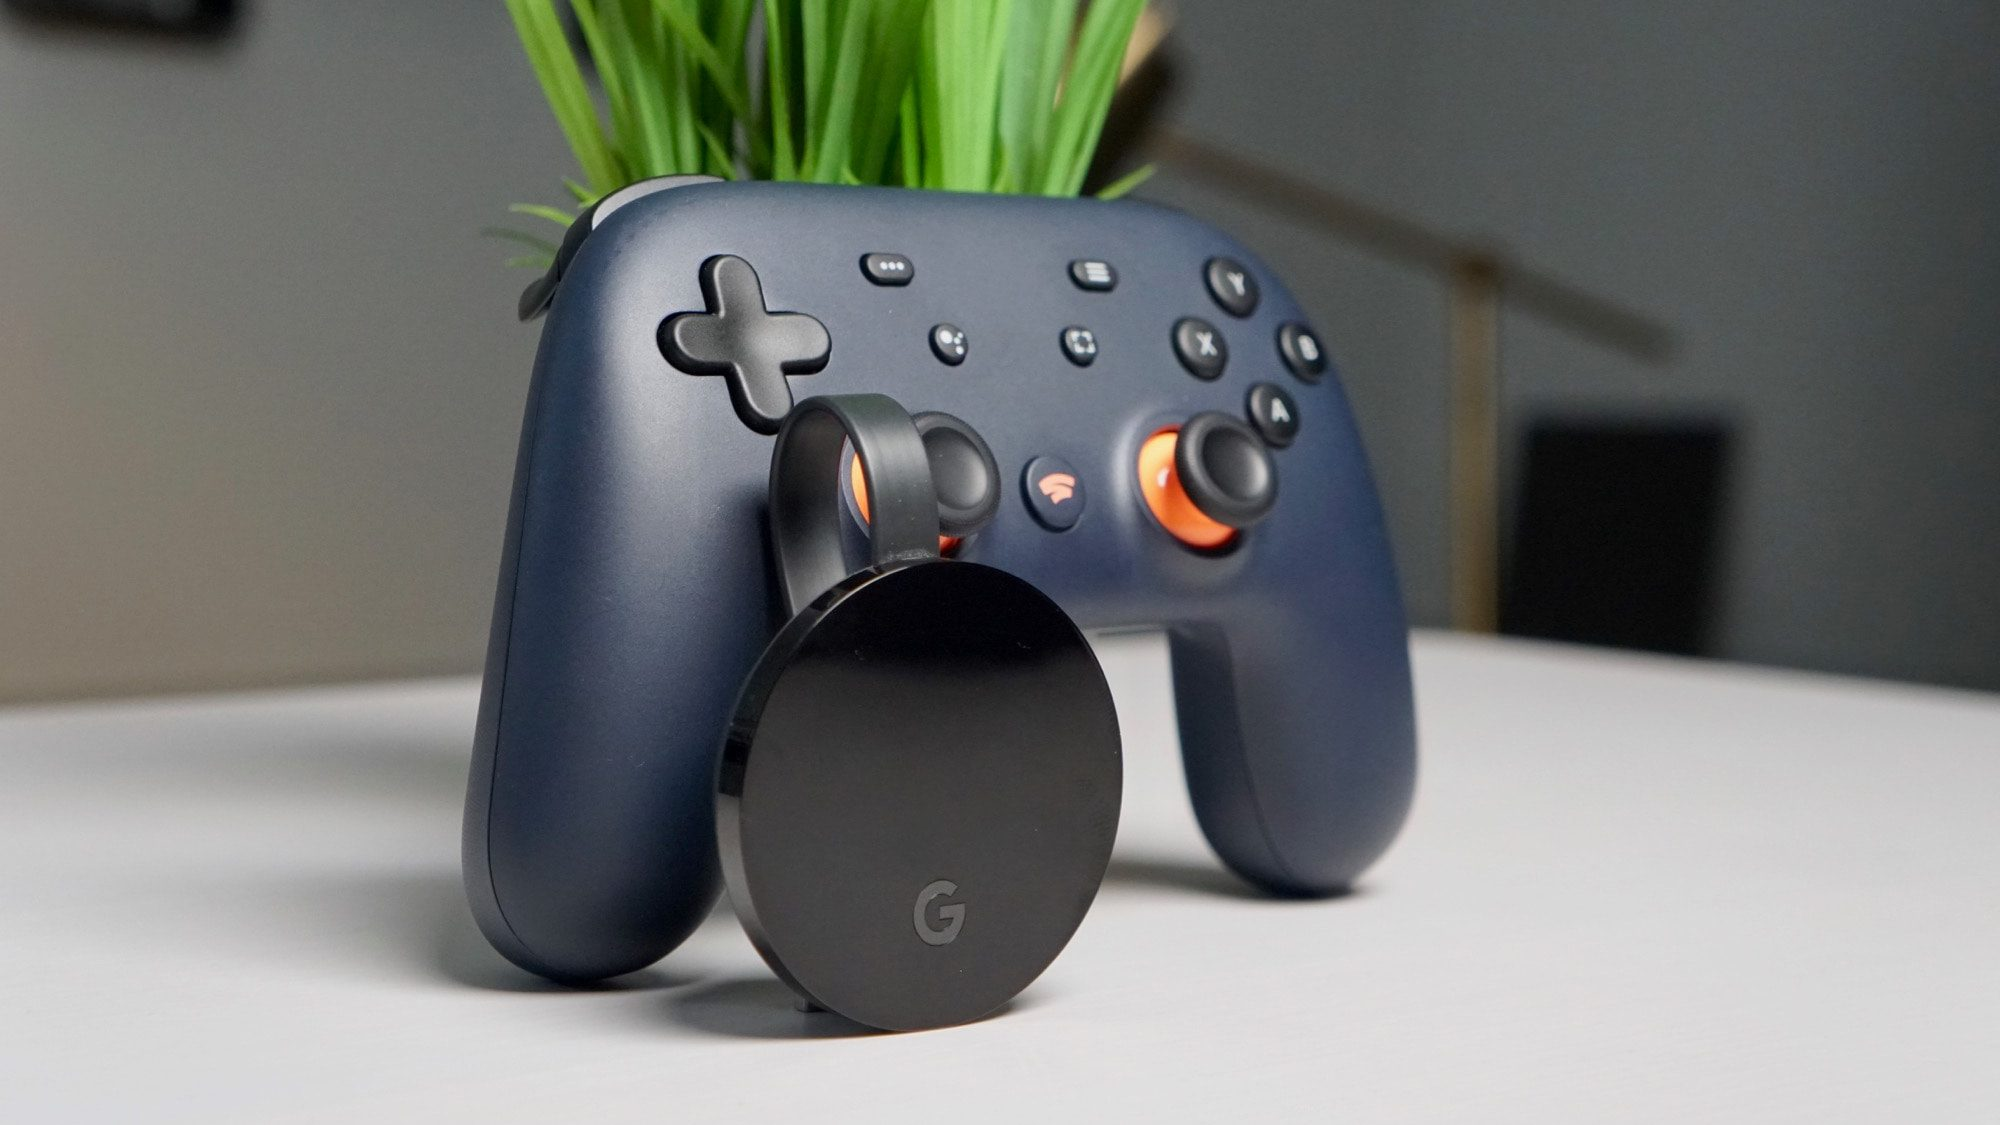 You can now play Google Stadia on all Chromecast Ultras